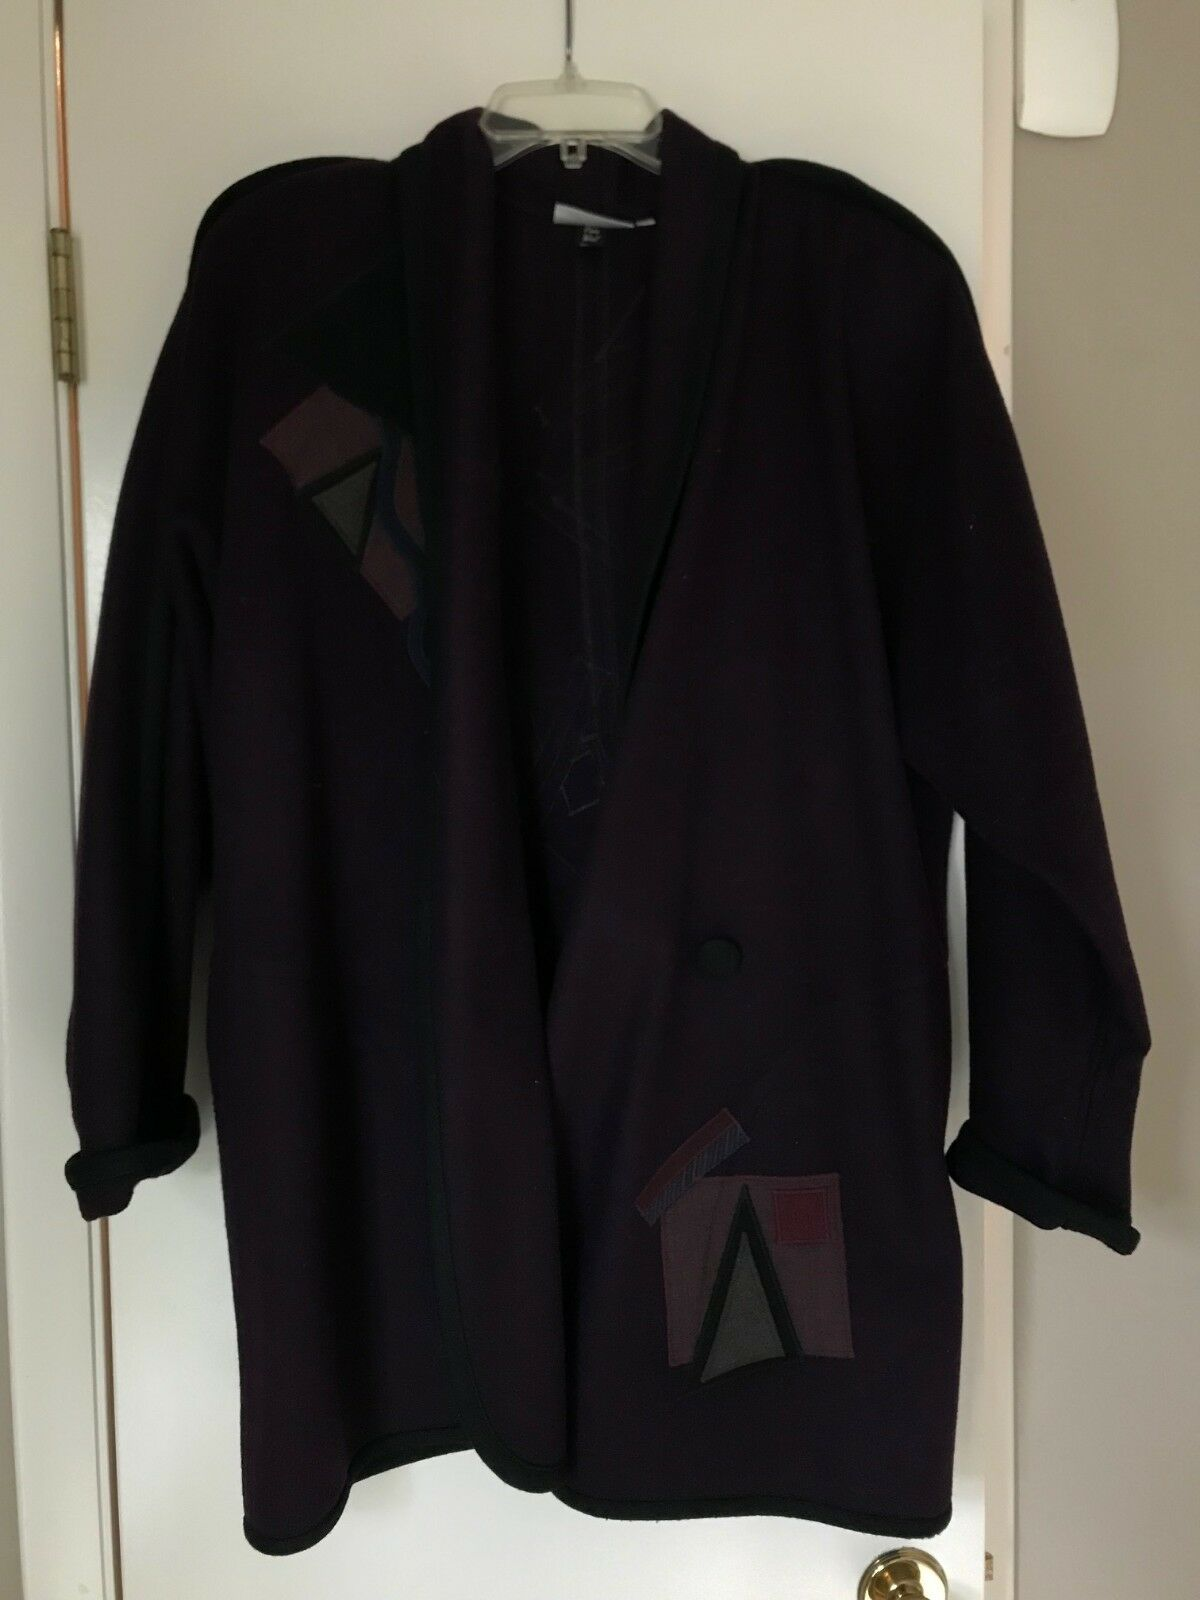 LARGE Burgundy beppa coat Geometric designs Outerwear GOOD condition